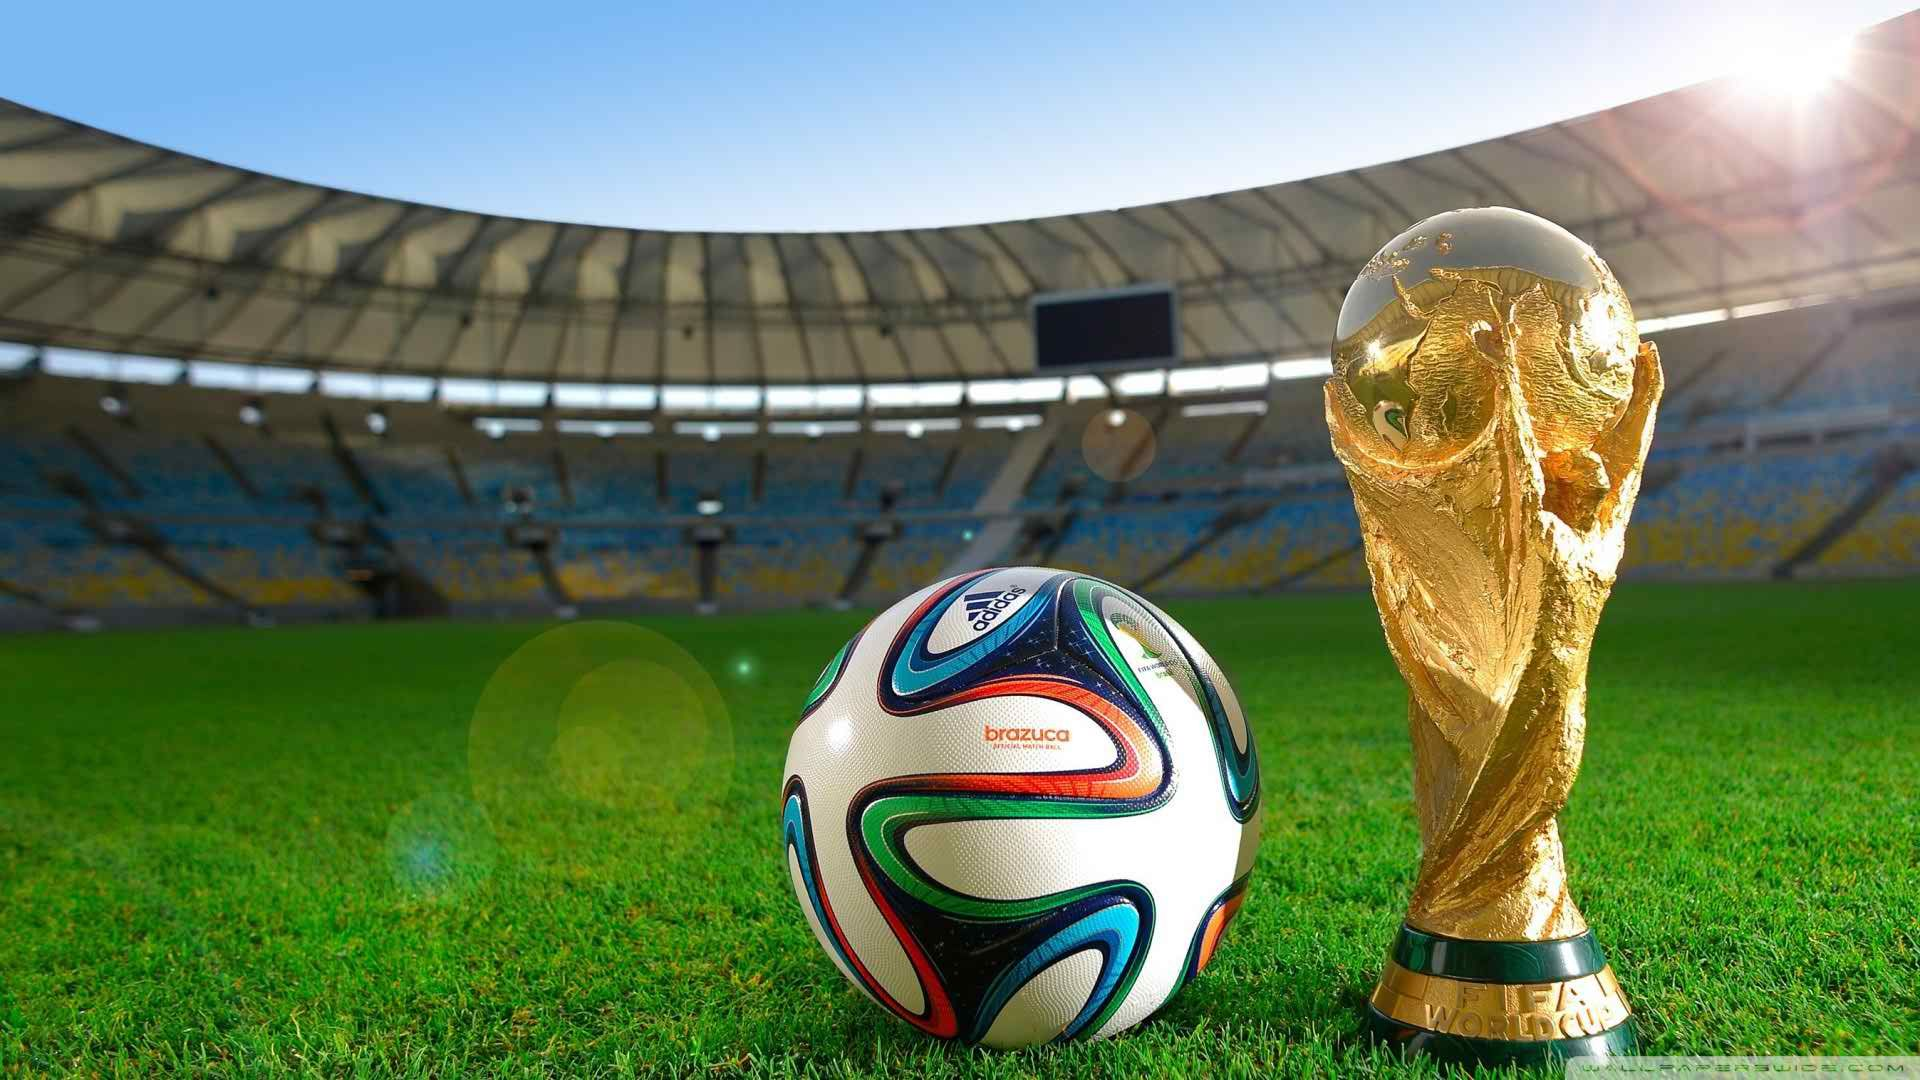 2018 fifa world cup full hd wallpaper World cup stadiums